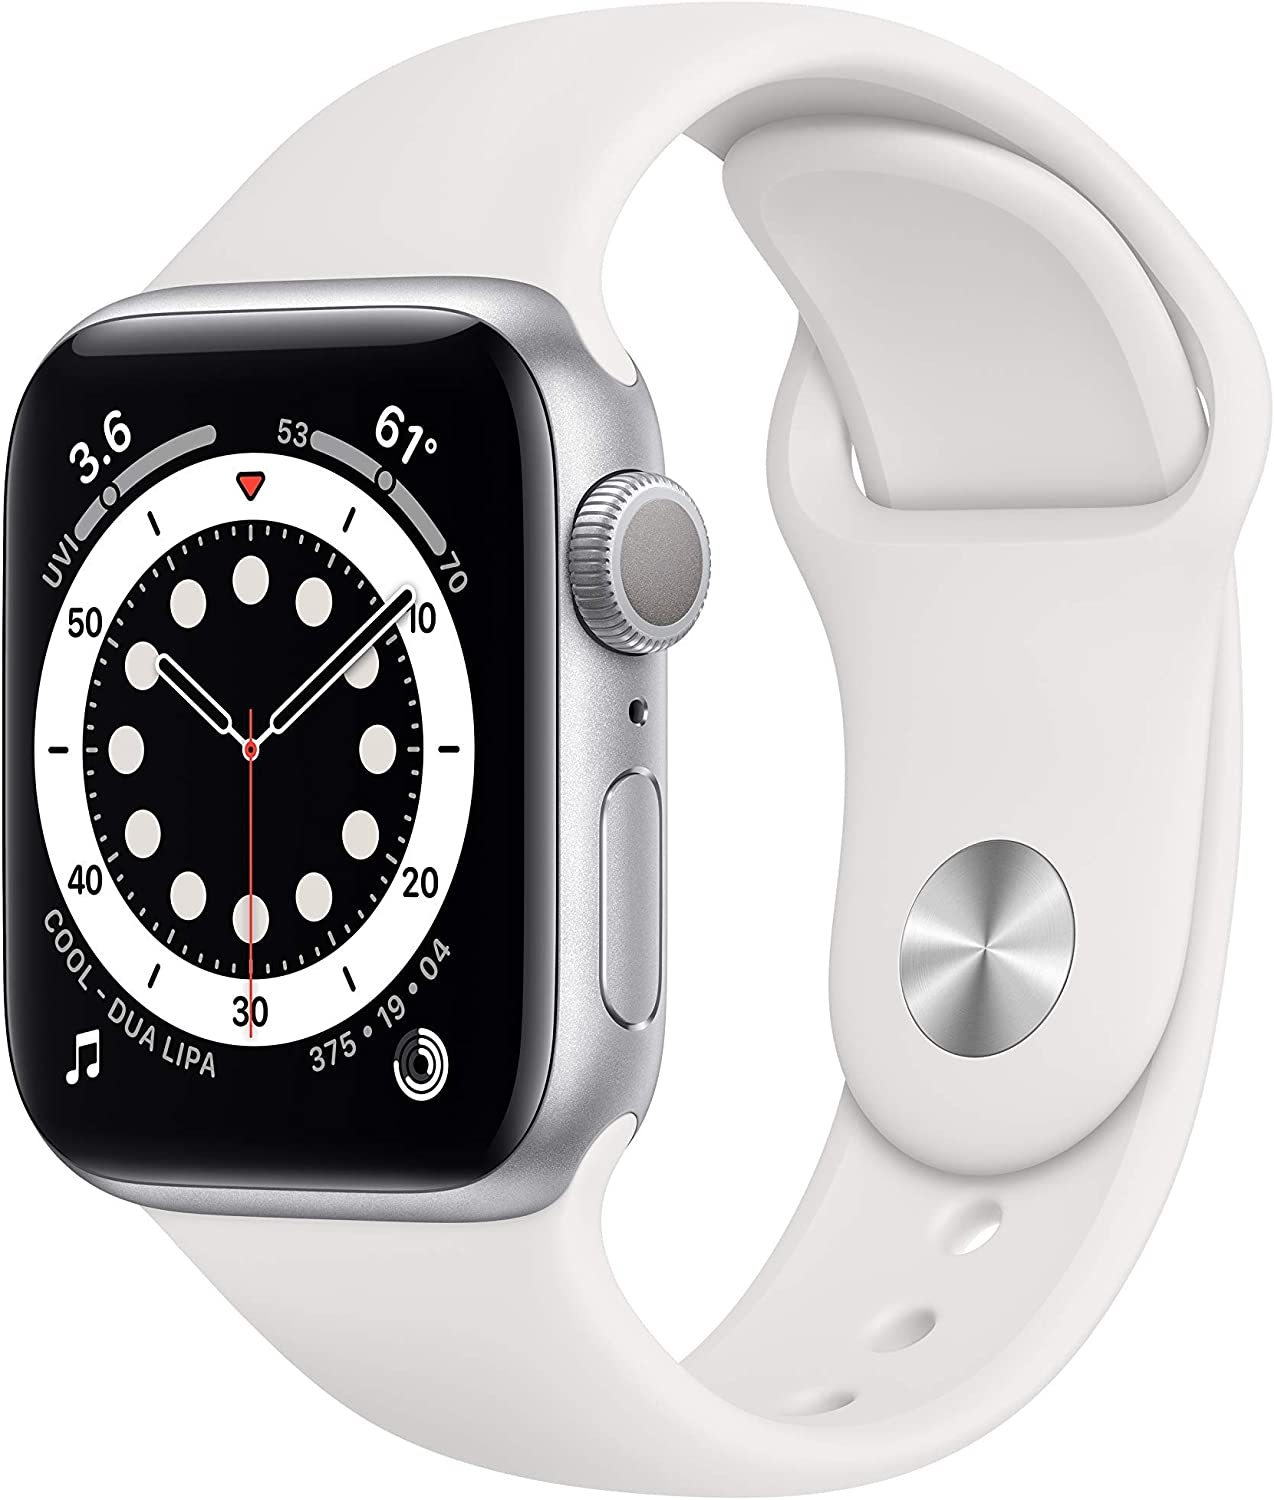 New Apple Watch Series 6 (GPS, 40mm) - Silver Aluminum Case with White Sport Band (Renewed)